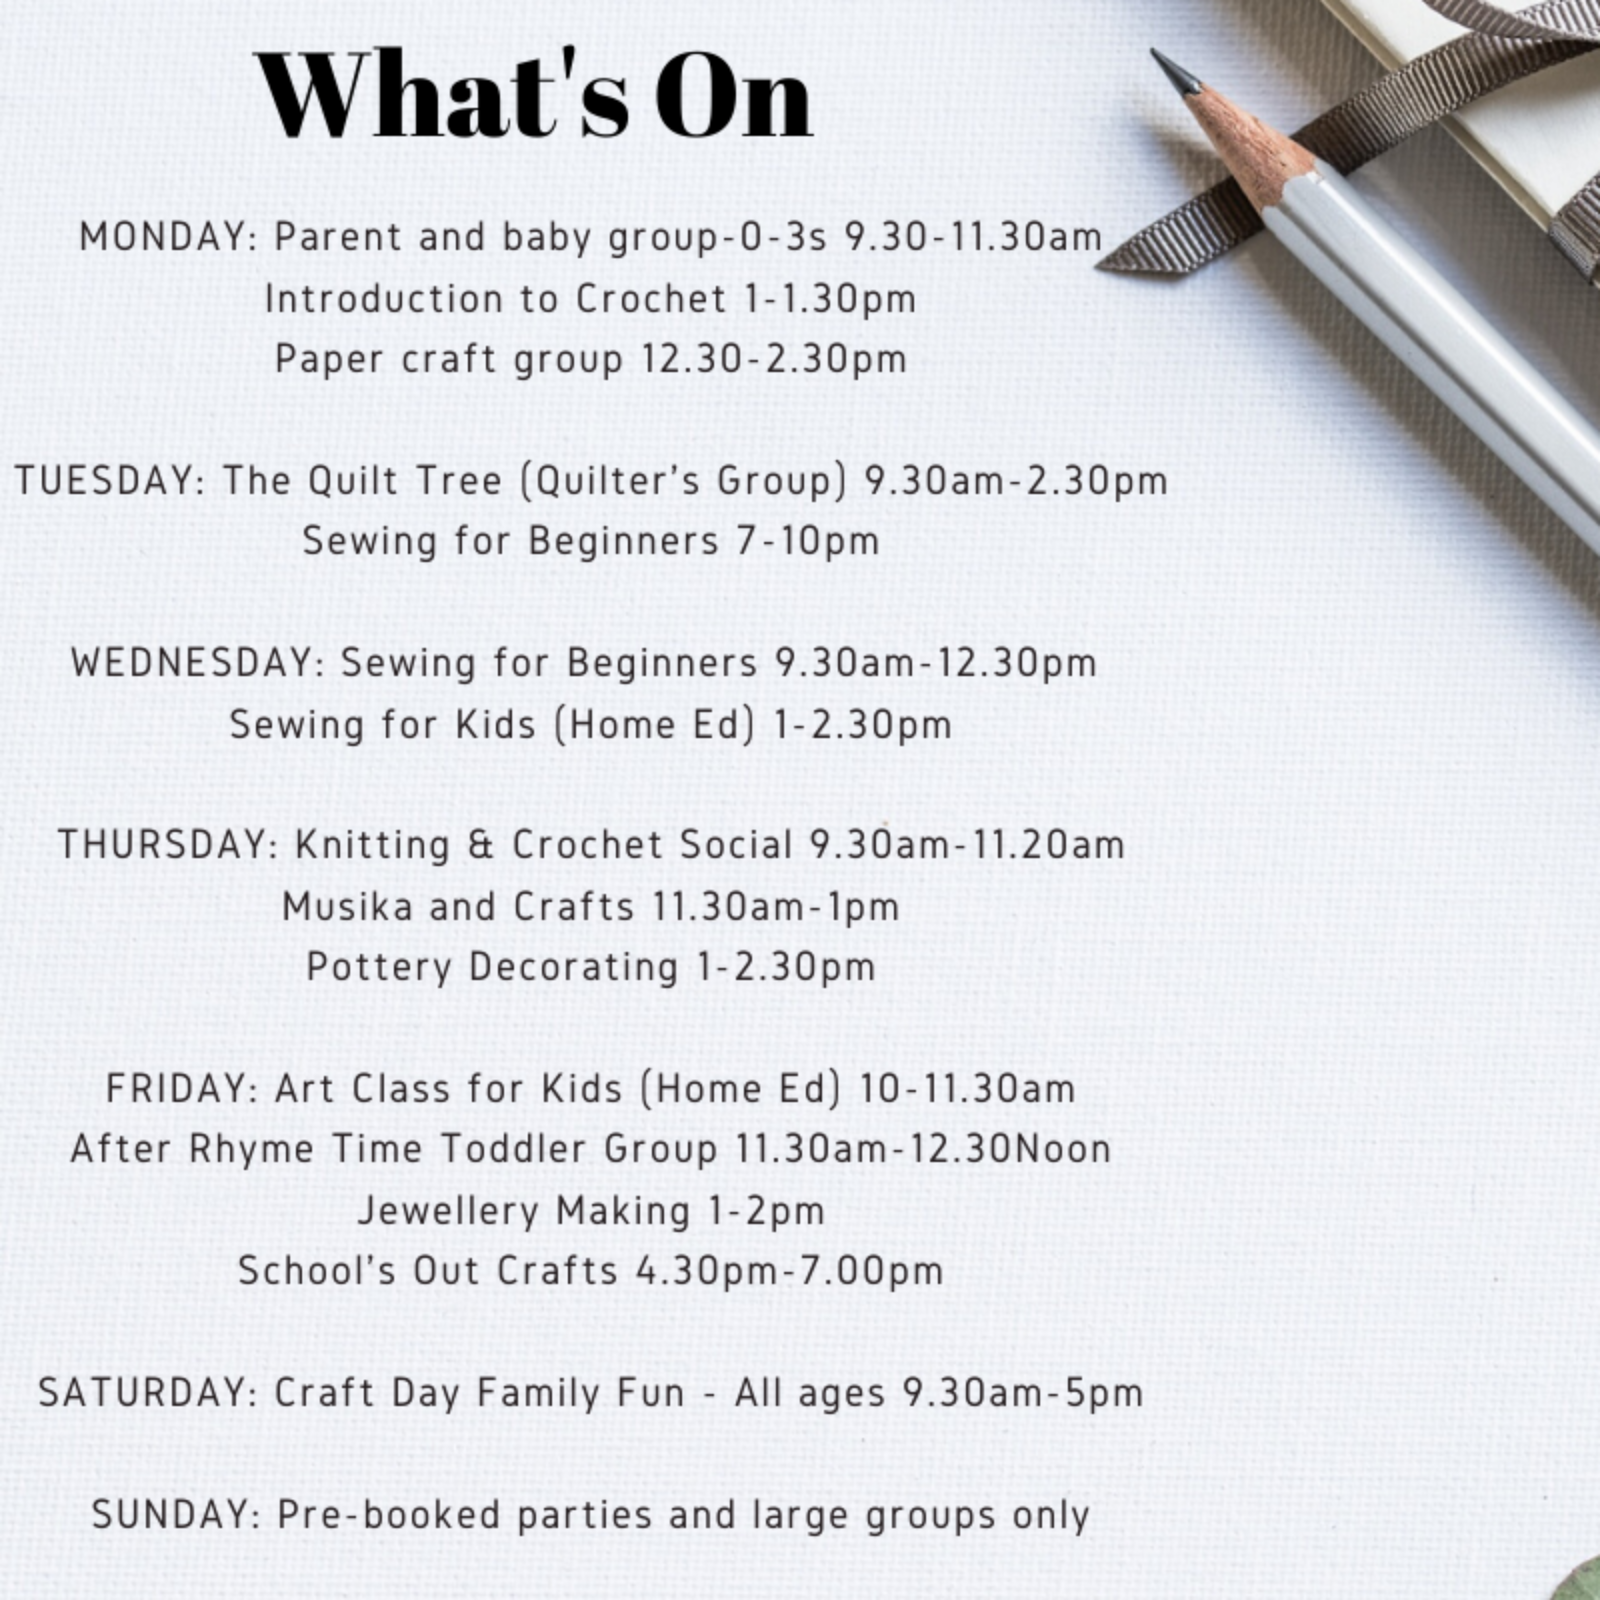 What's On at Daisy Elephant Craft Den